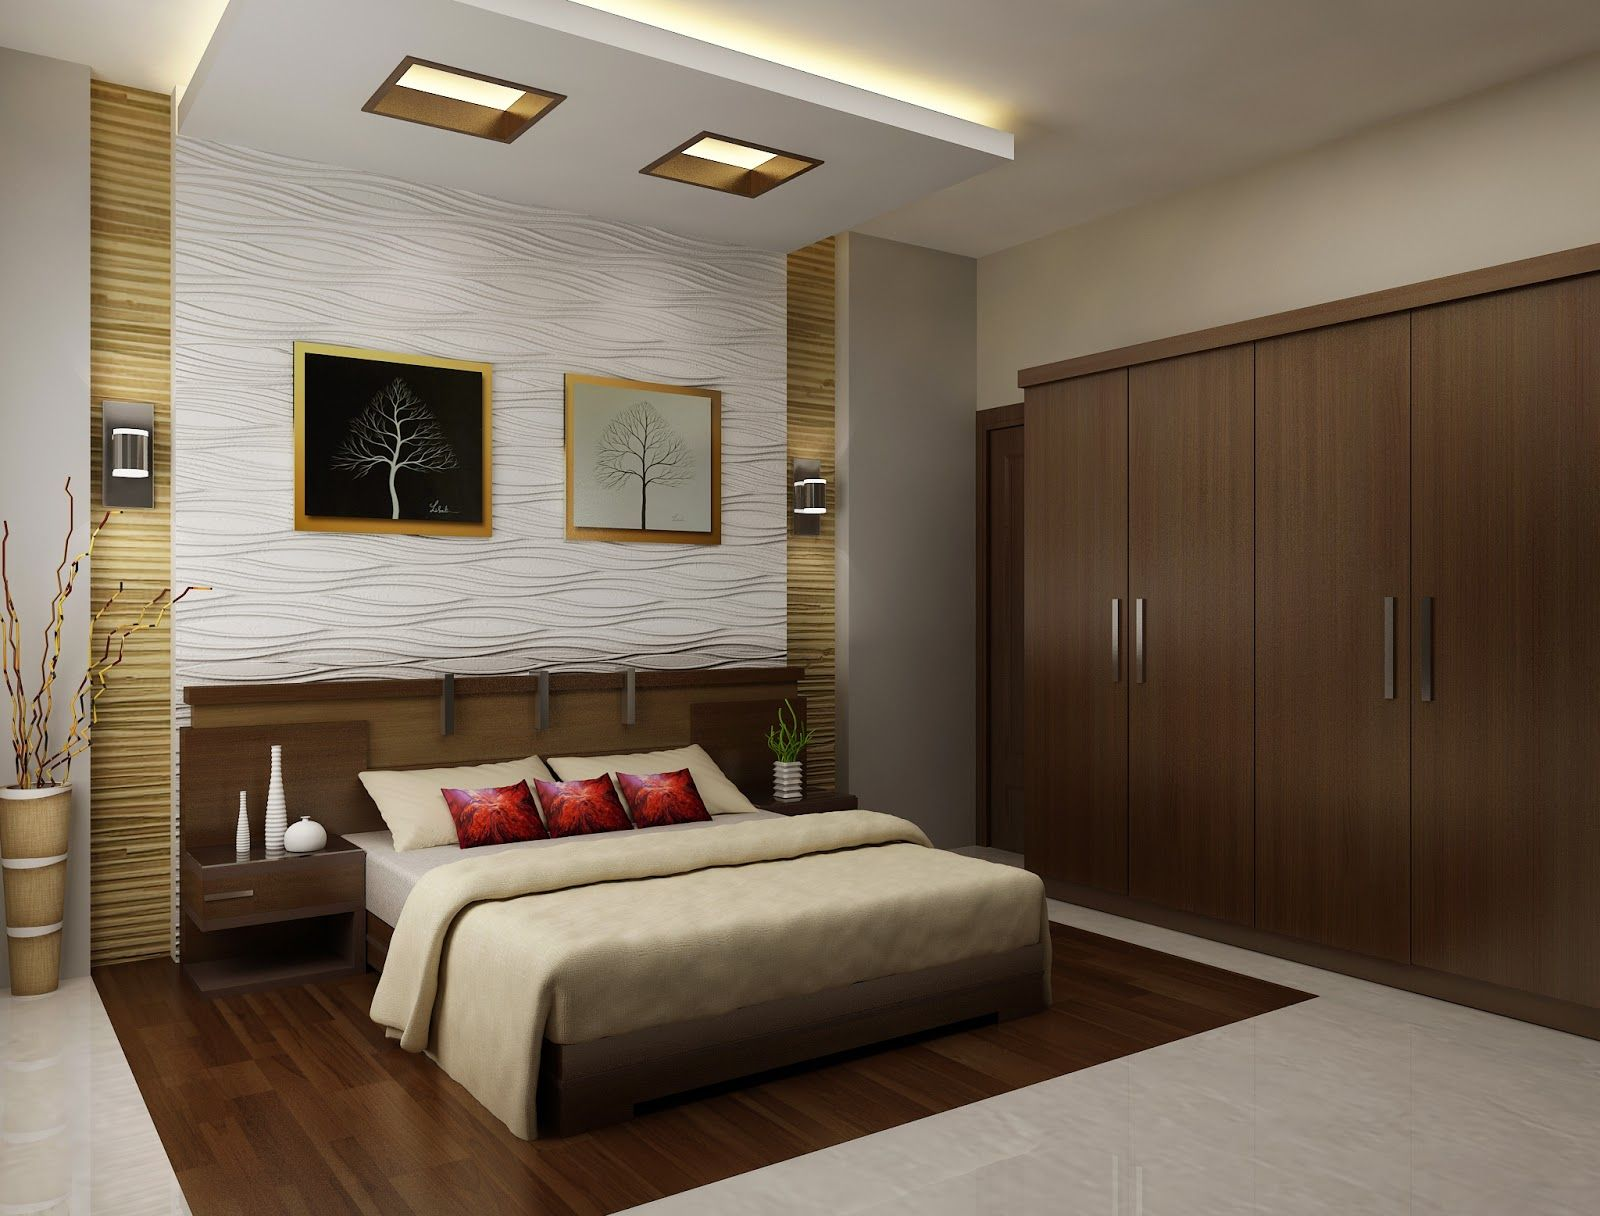 Kitchen window kerala  image result for kerala homes interior and exterior  home designs